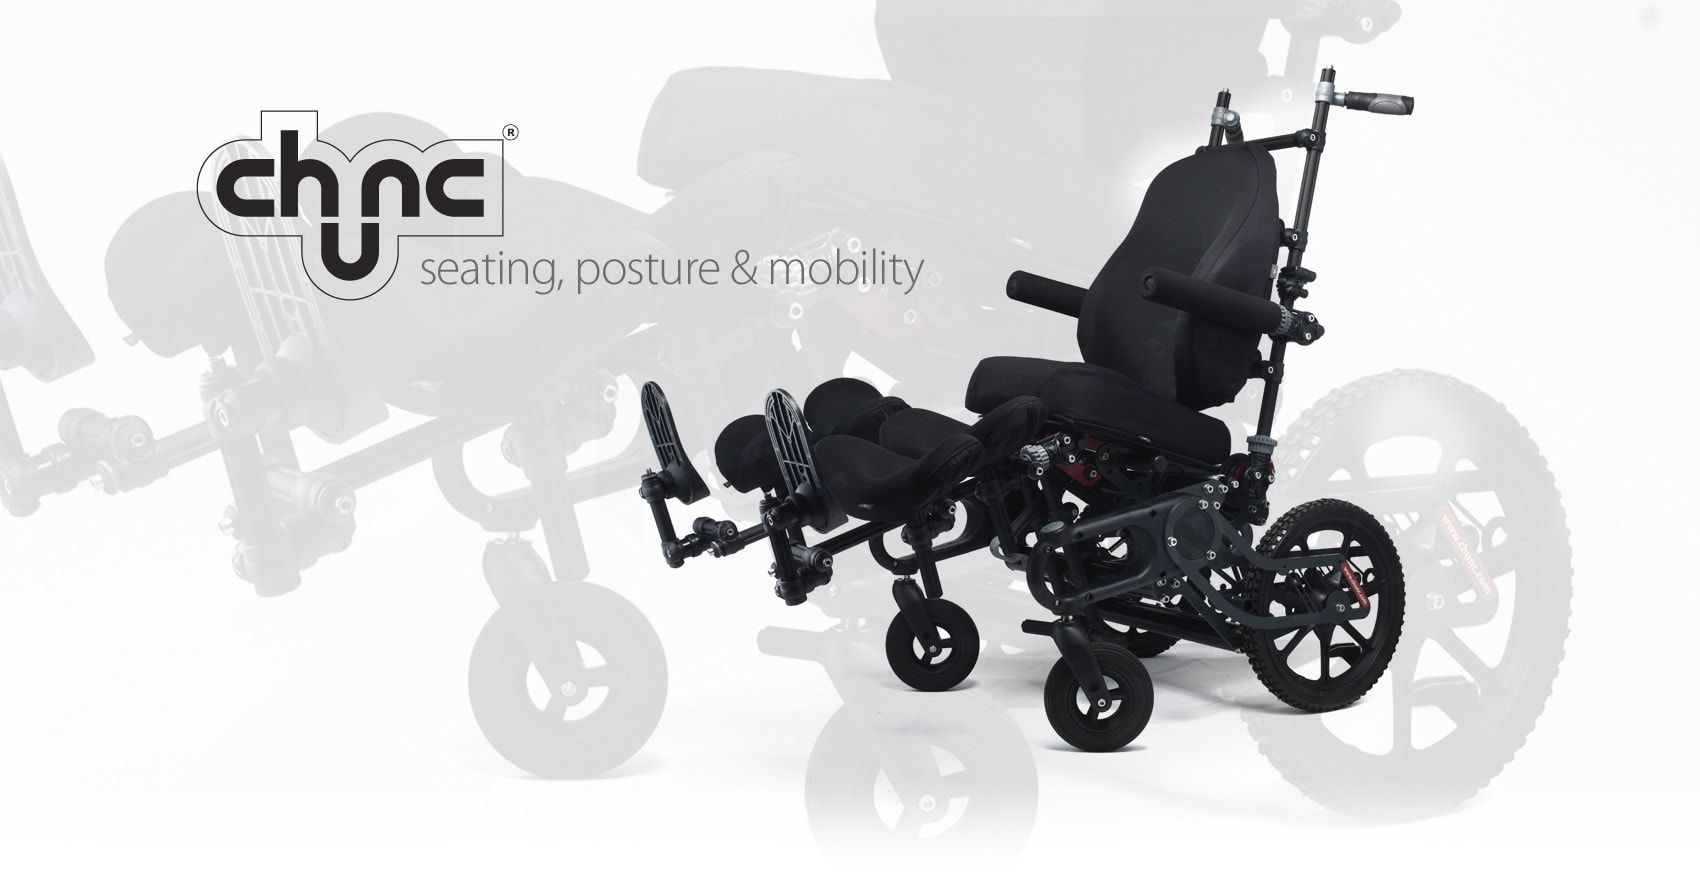 chunc spica wheelchair - seating solutions, posture management